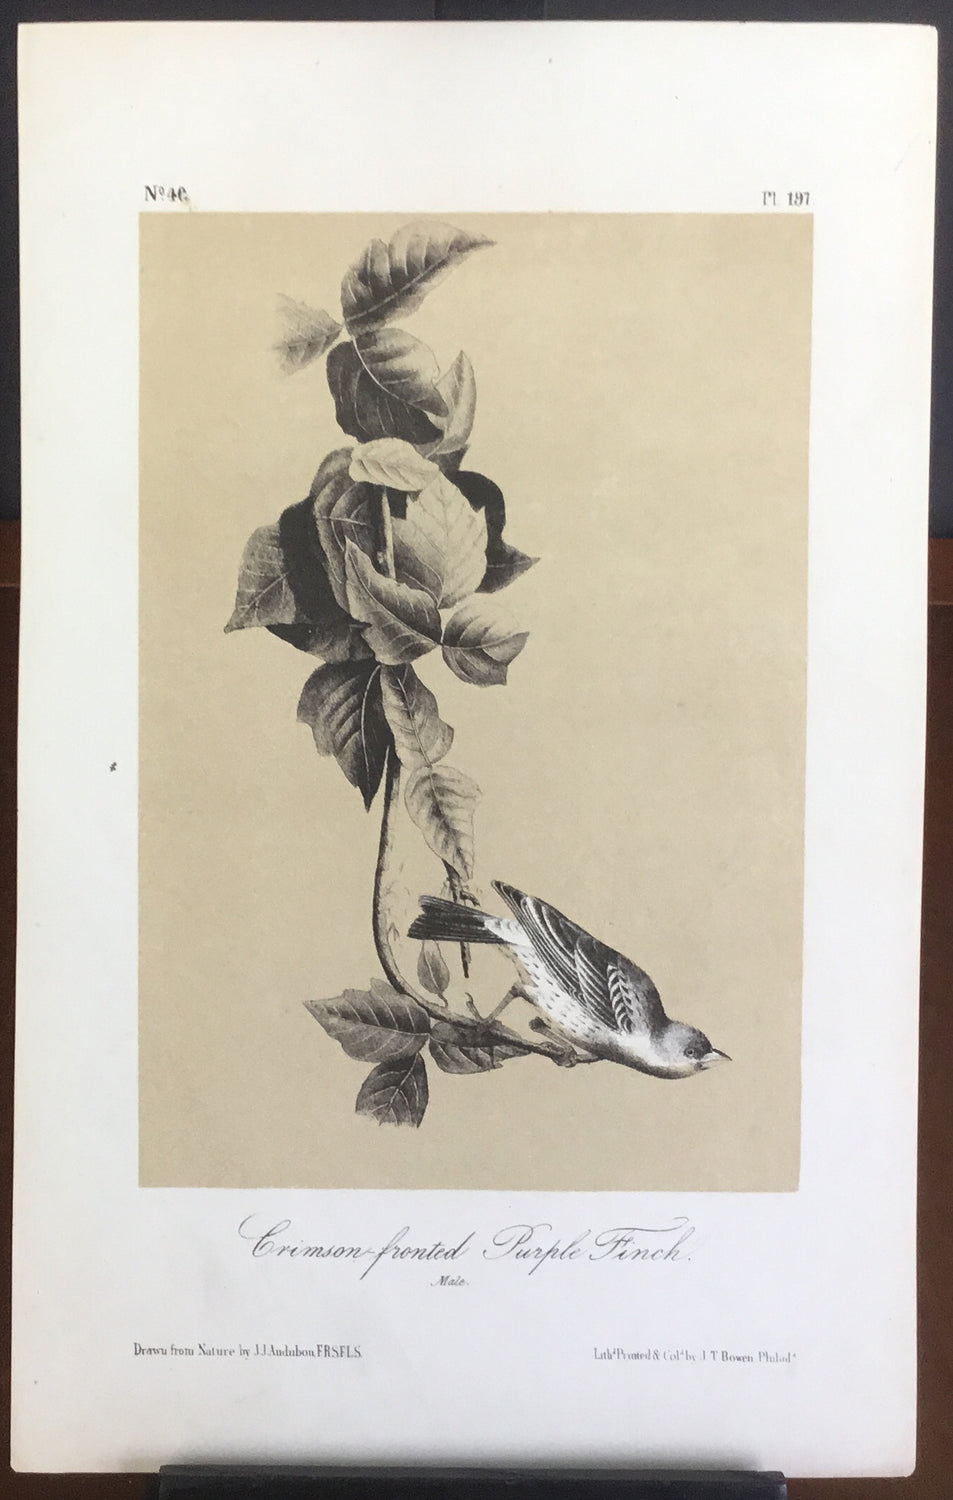 Audubon Octavo Crimson-fronted Purple Finch, plate 197, uncolored test sheet, 7 x 11